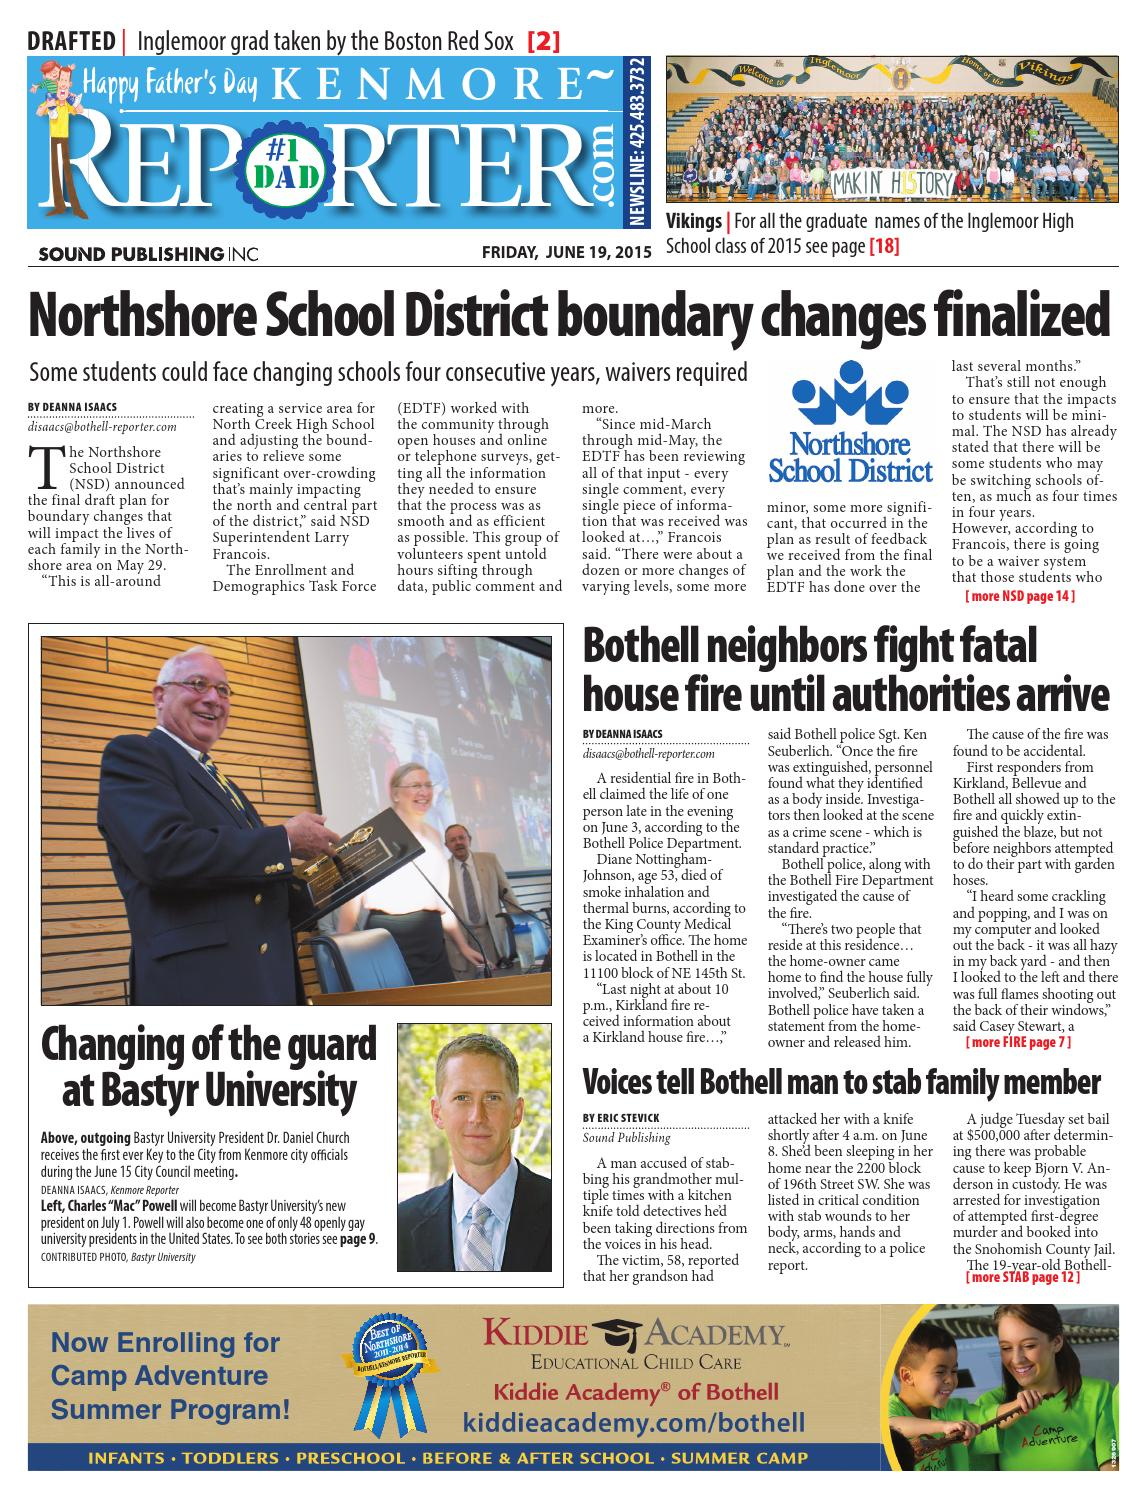 Bothell/Kenmore Reporter, June 19, 2015 by Sound Publishing